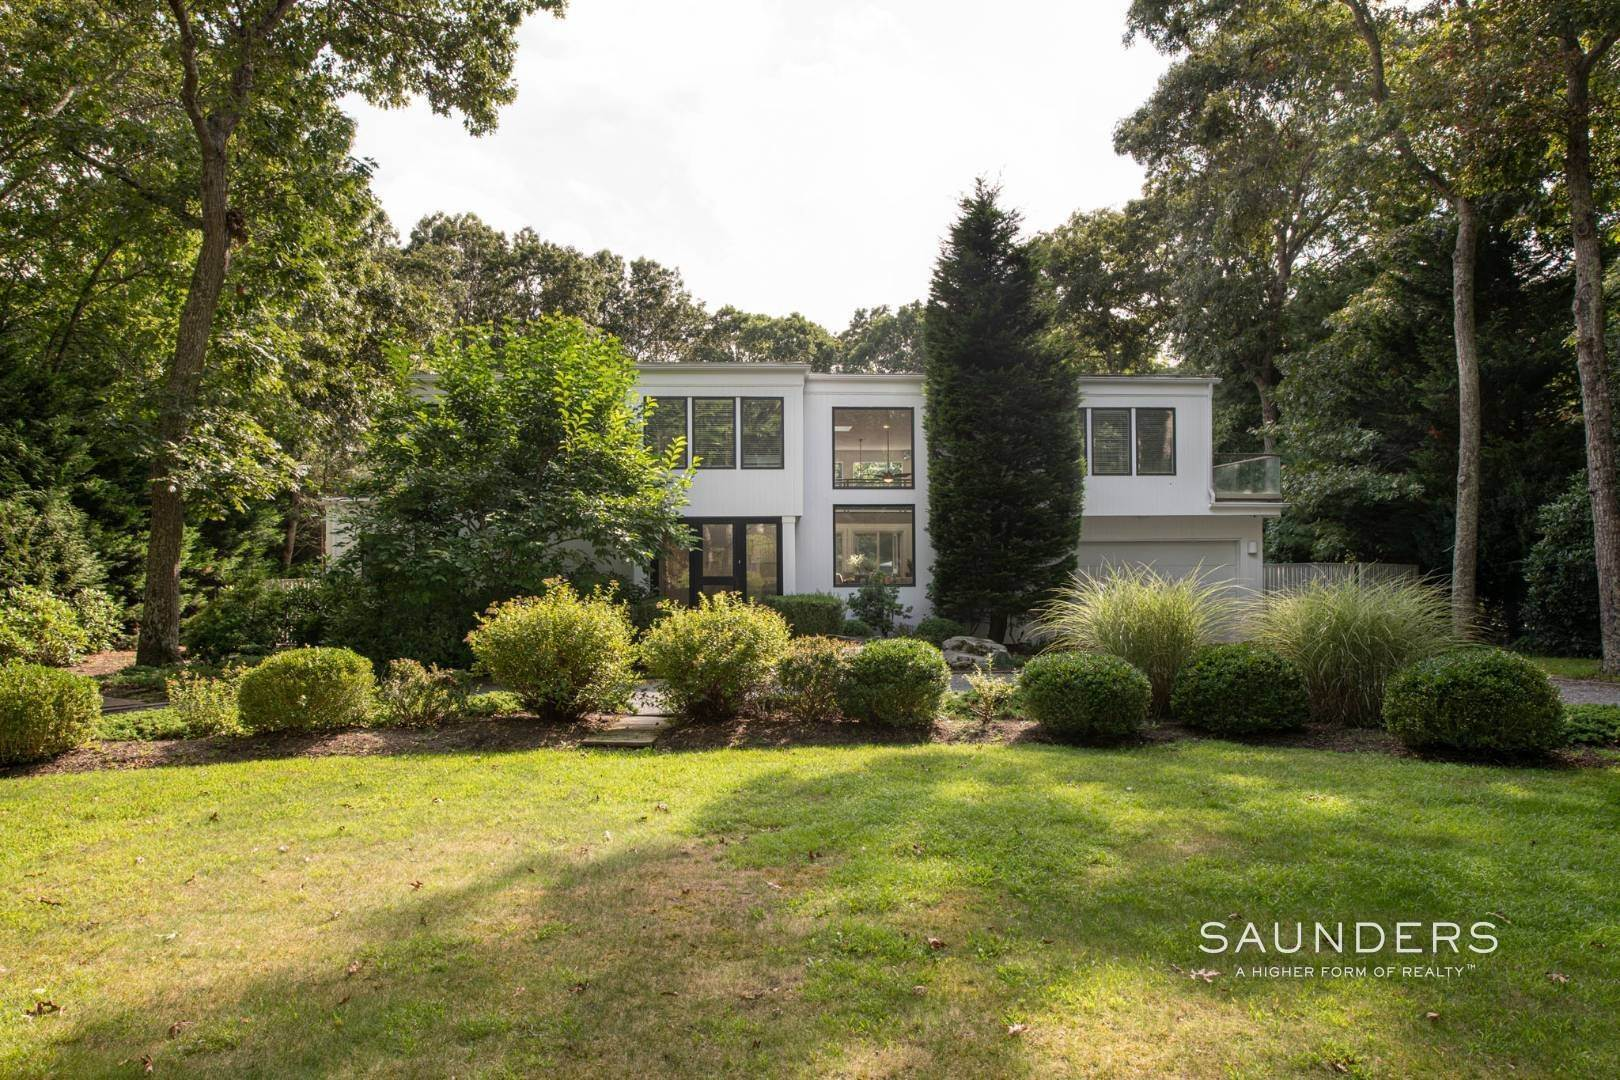 Single Family Homes for Sale at Modern Retreat Close To East Hampton Village & Ocean Beaches 15 Anvil Court, East Hampton, East Hampton Town, NY 11937